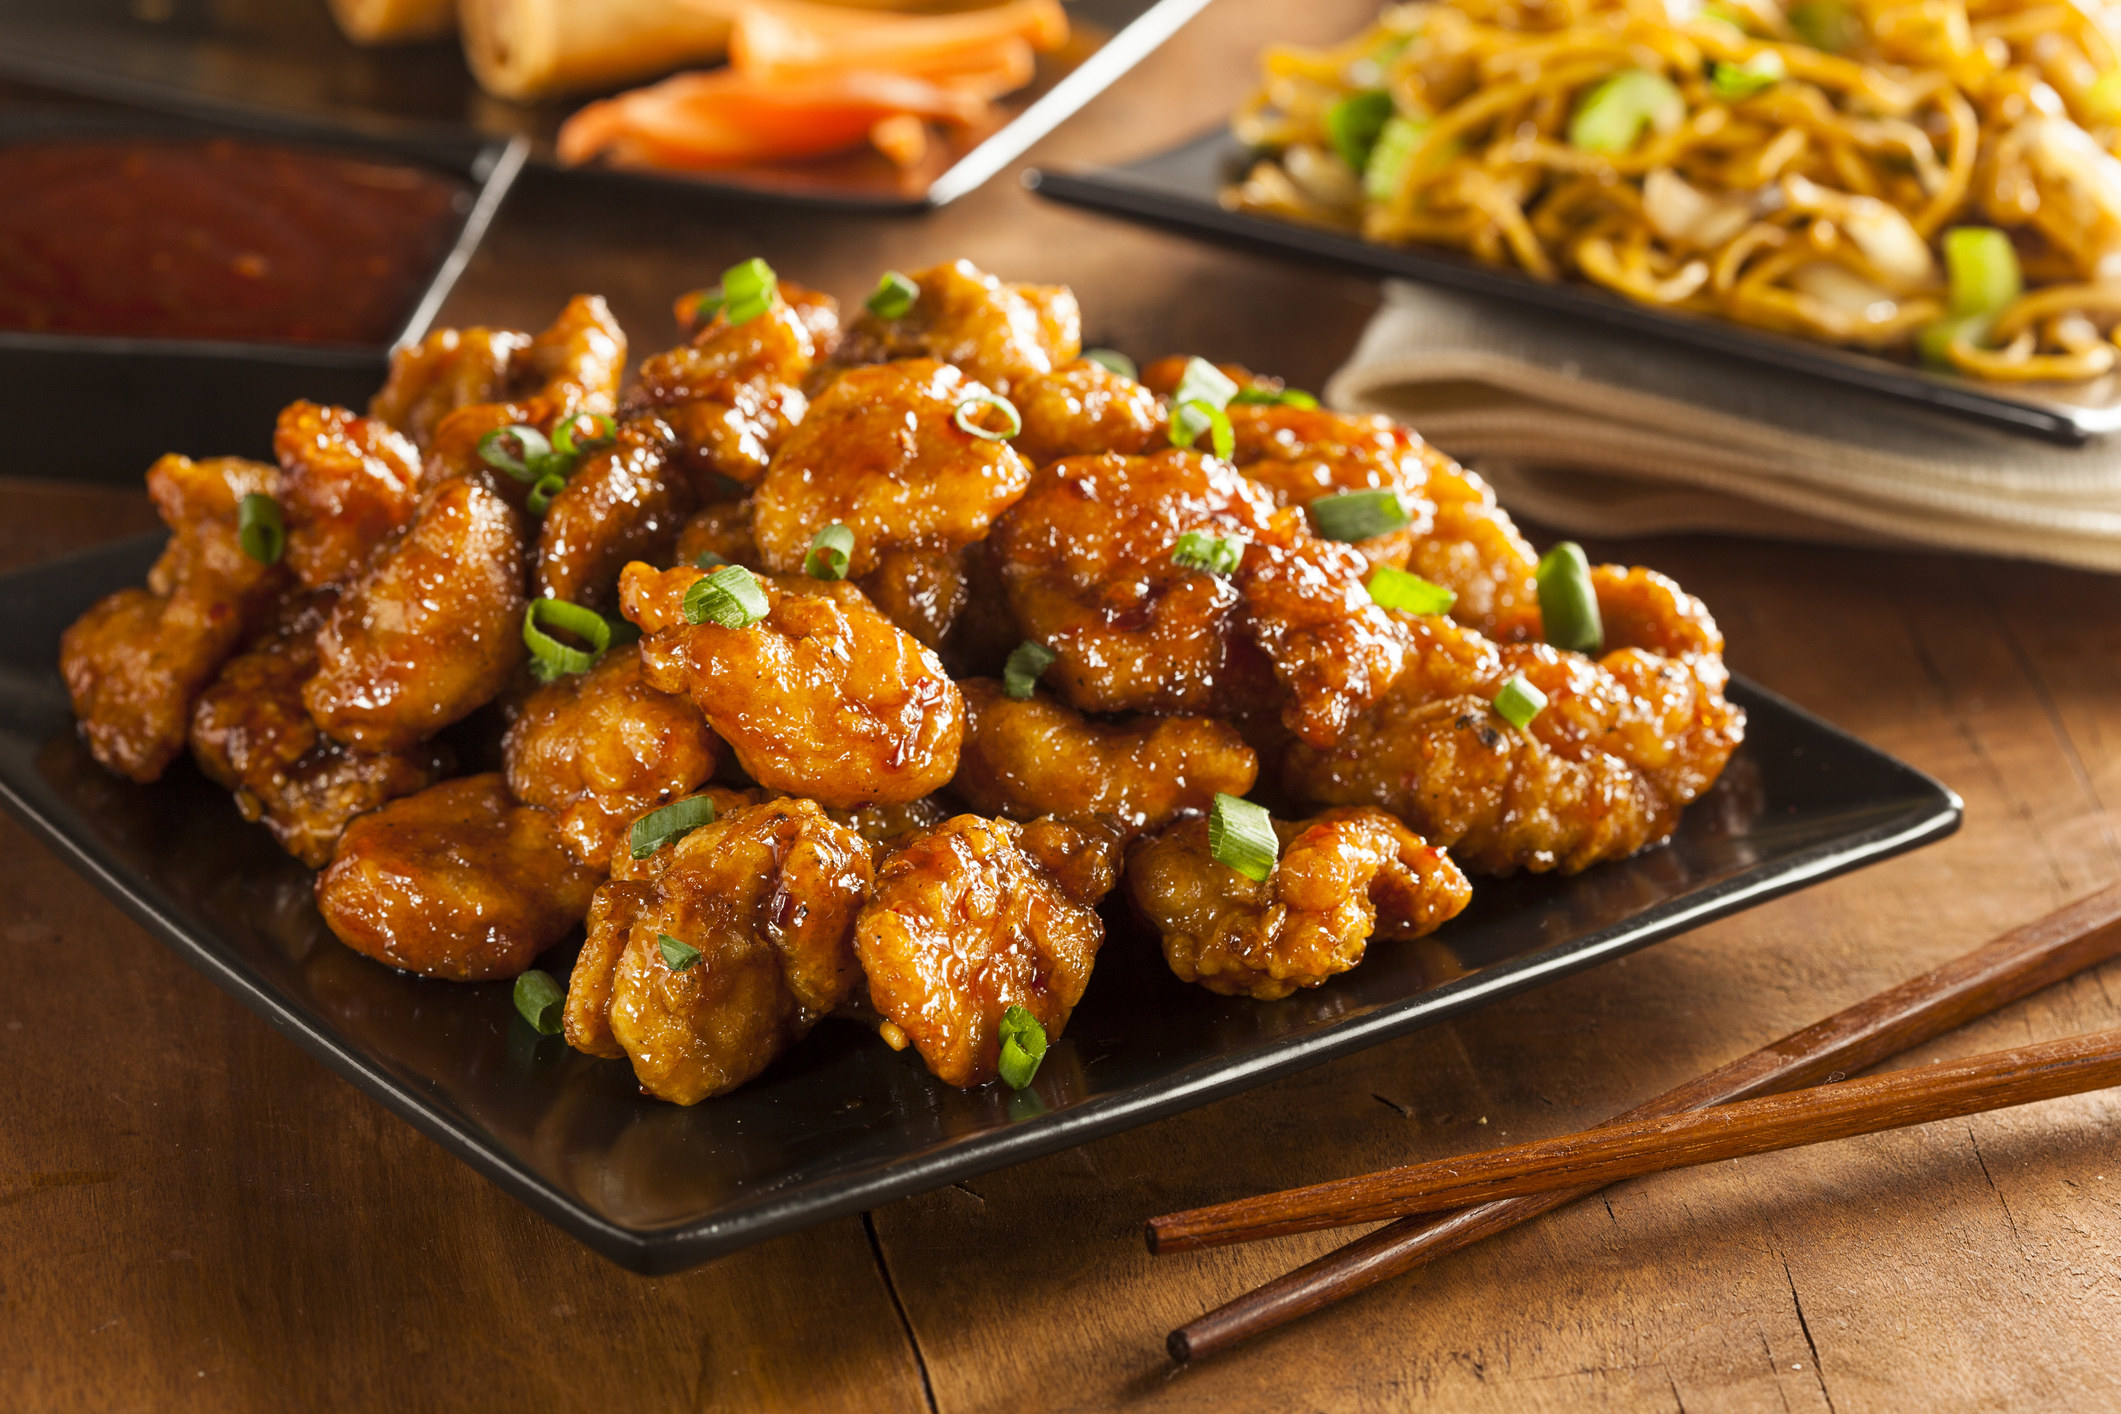 Plate of orange chicken.